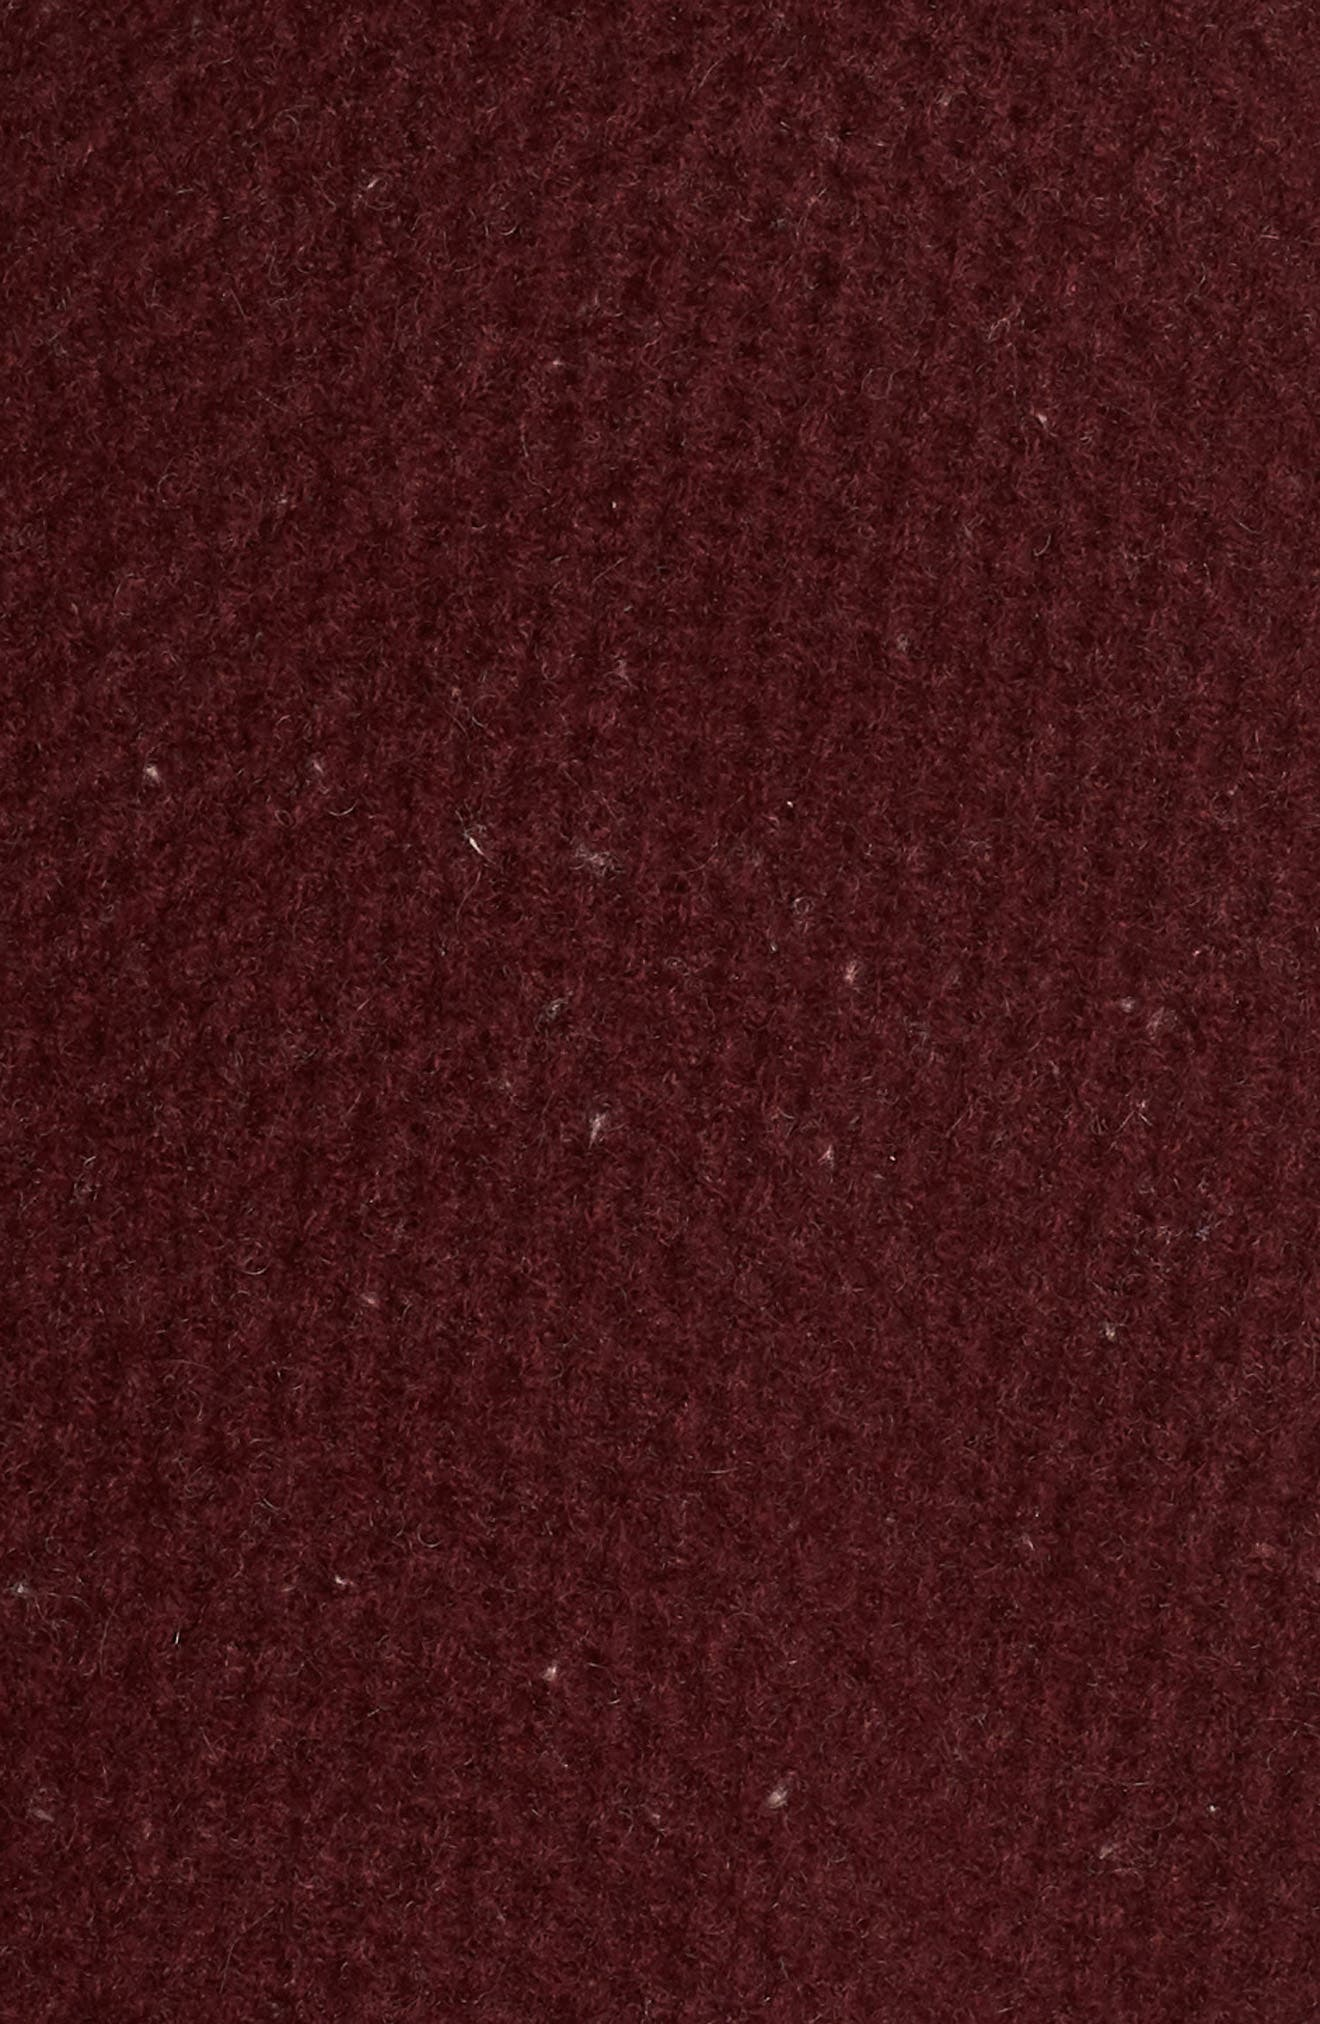 UGG<SUP>®</SUP>, Elyse Cashmere Zip Hoodie, Alternate thumbnail 5, color, PORT HEATHER